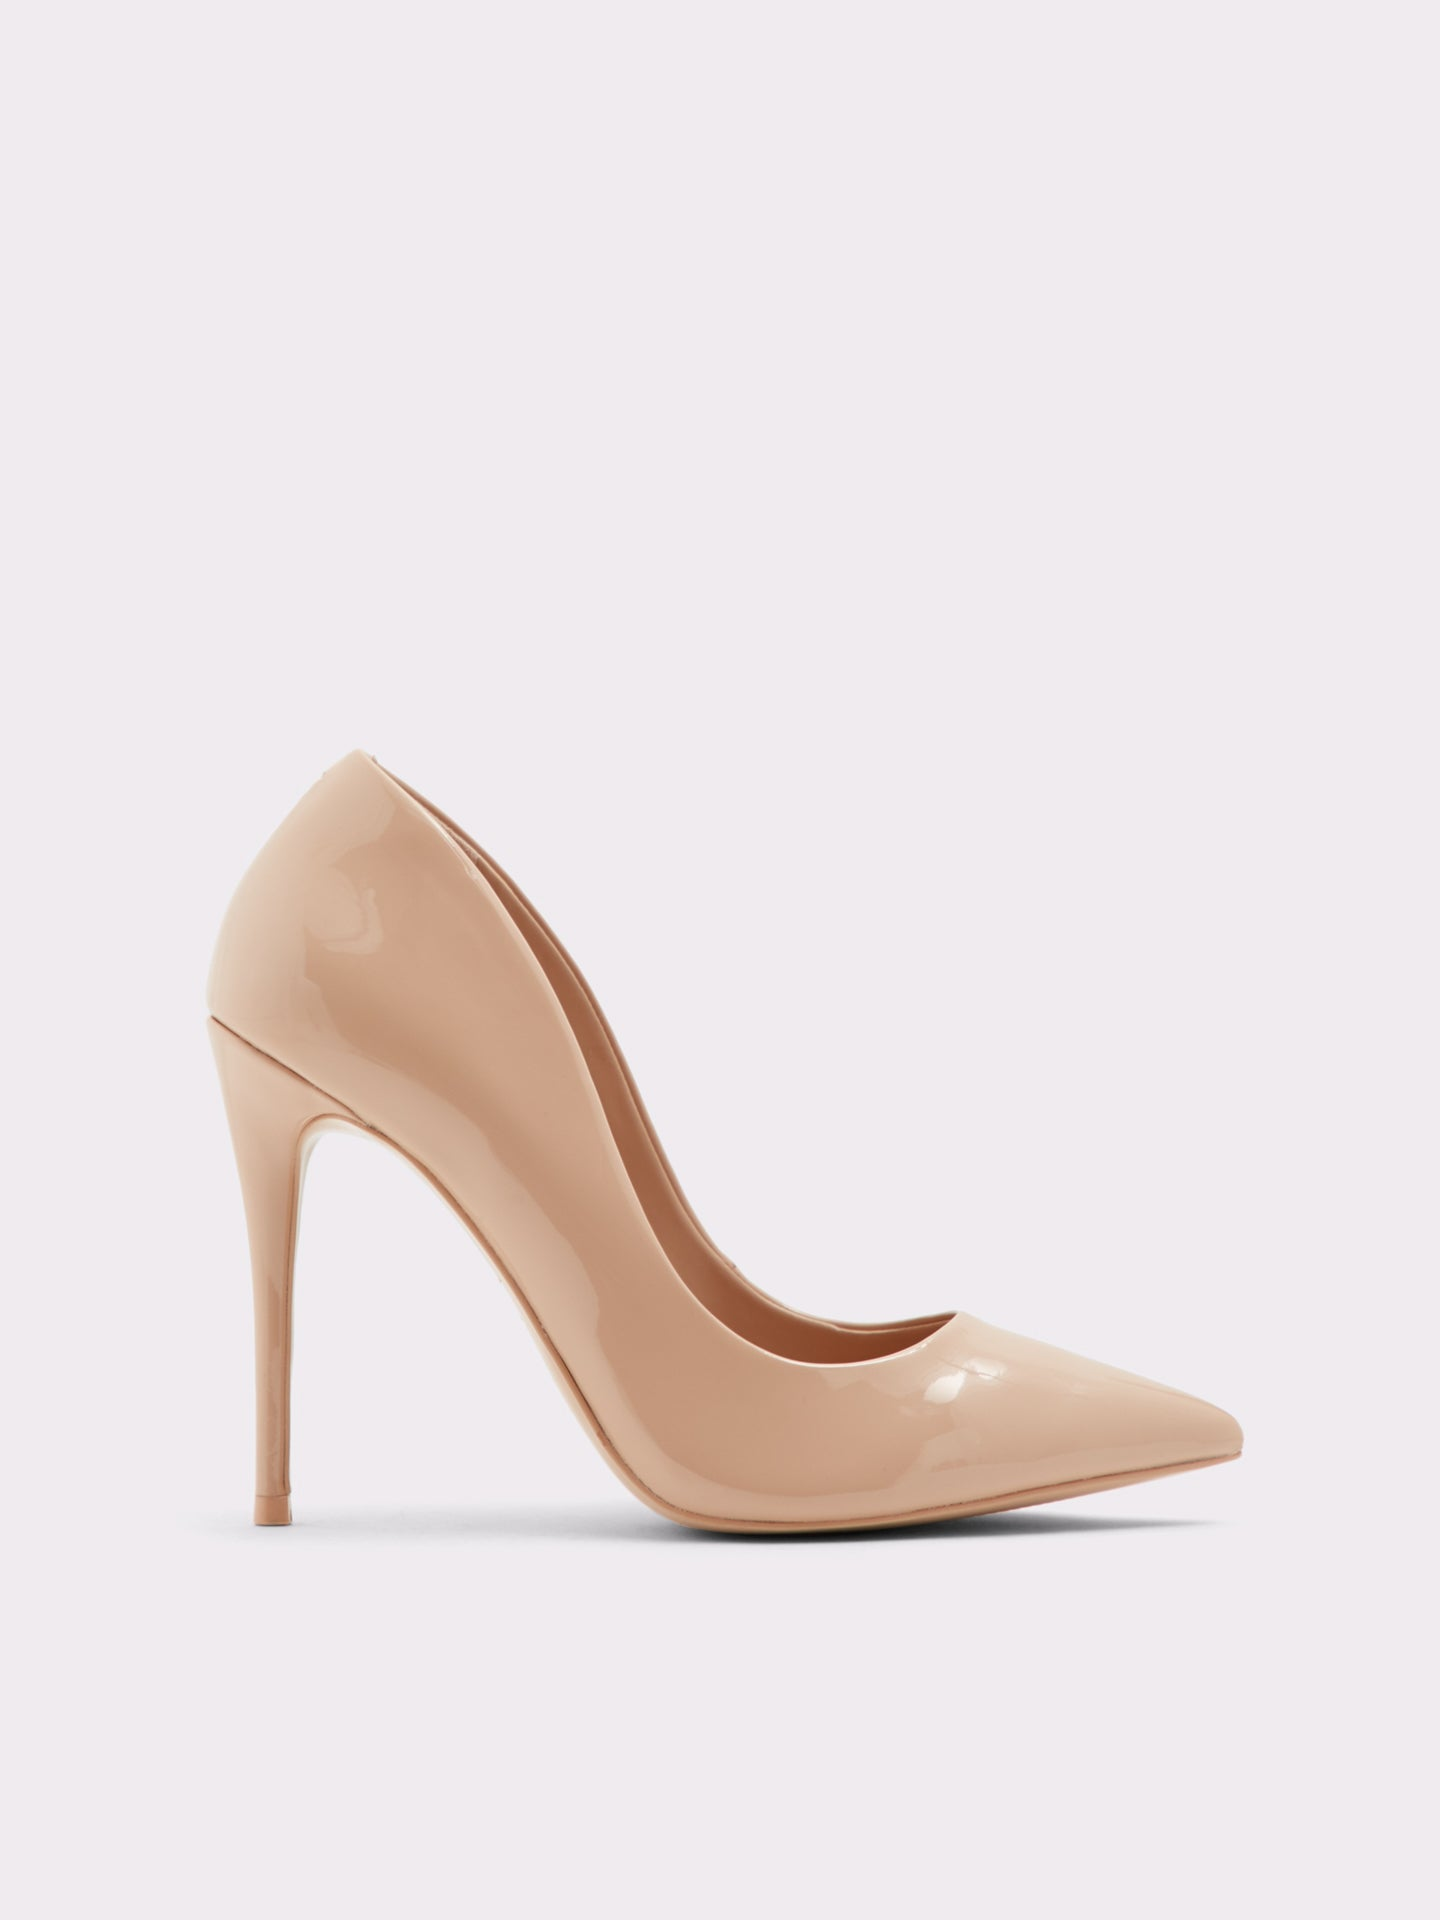 Aldo Gloss Beige Pointed Toe Shoes